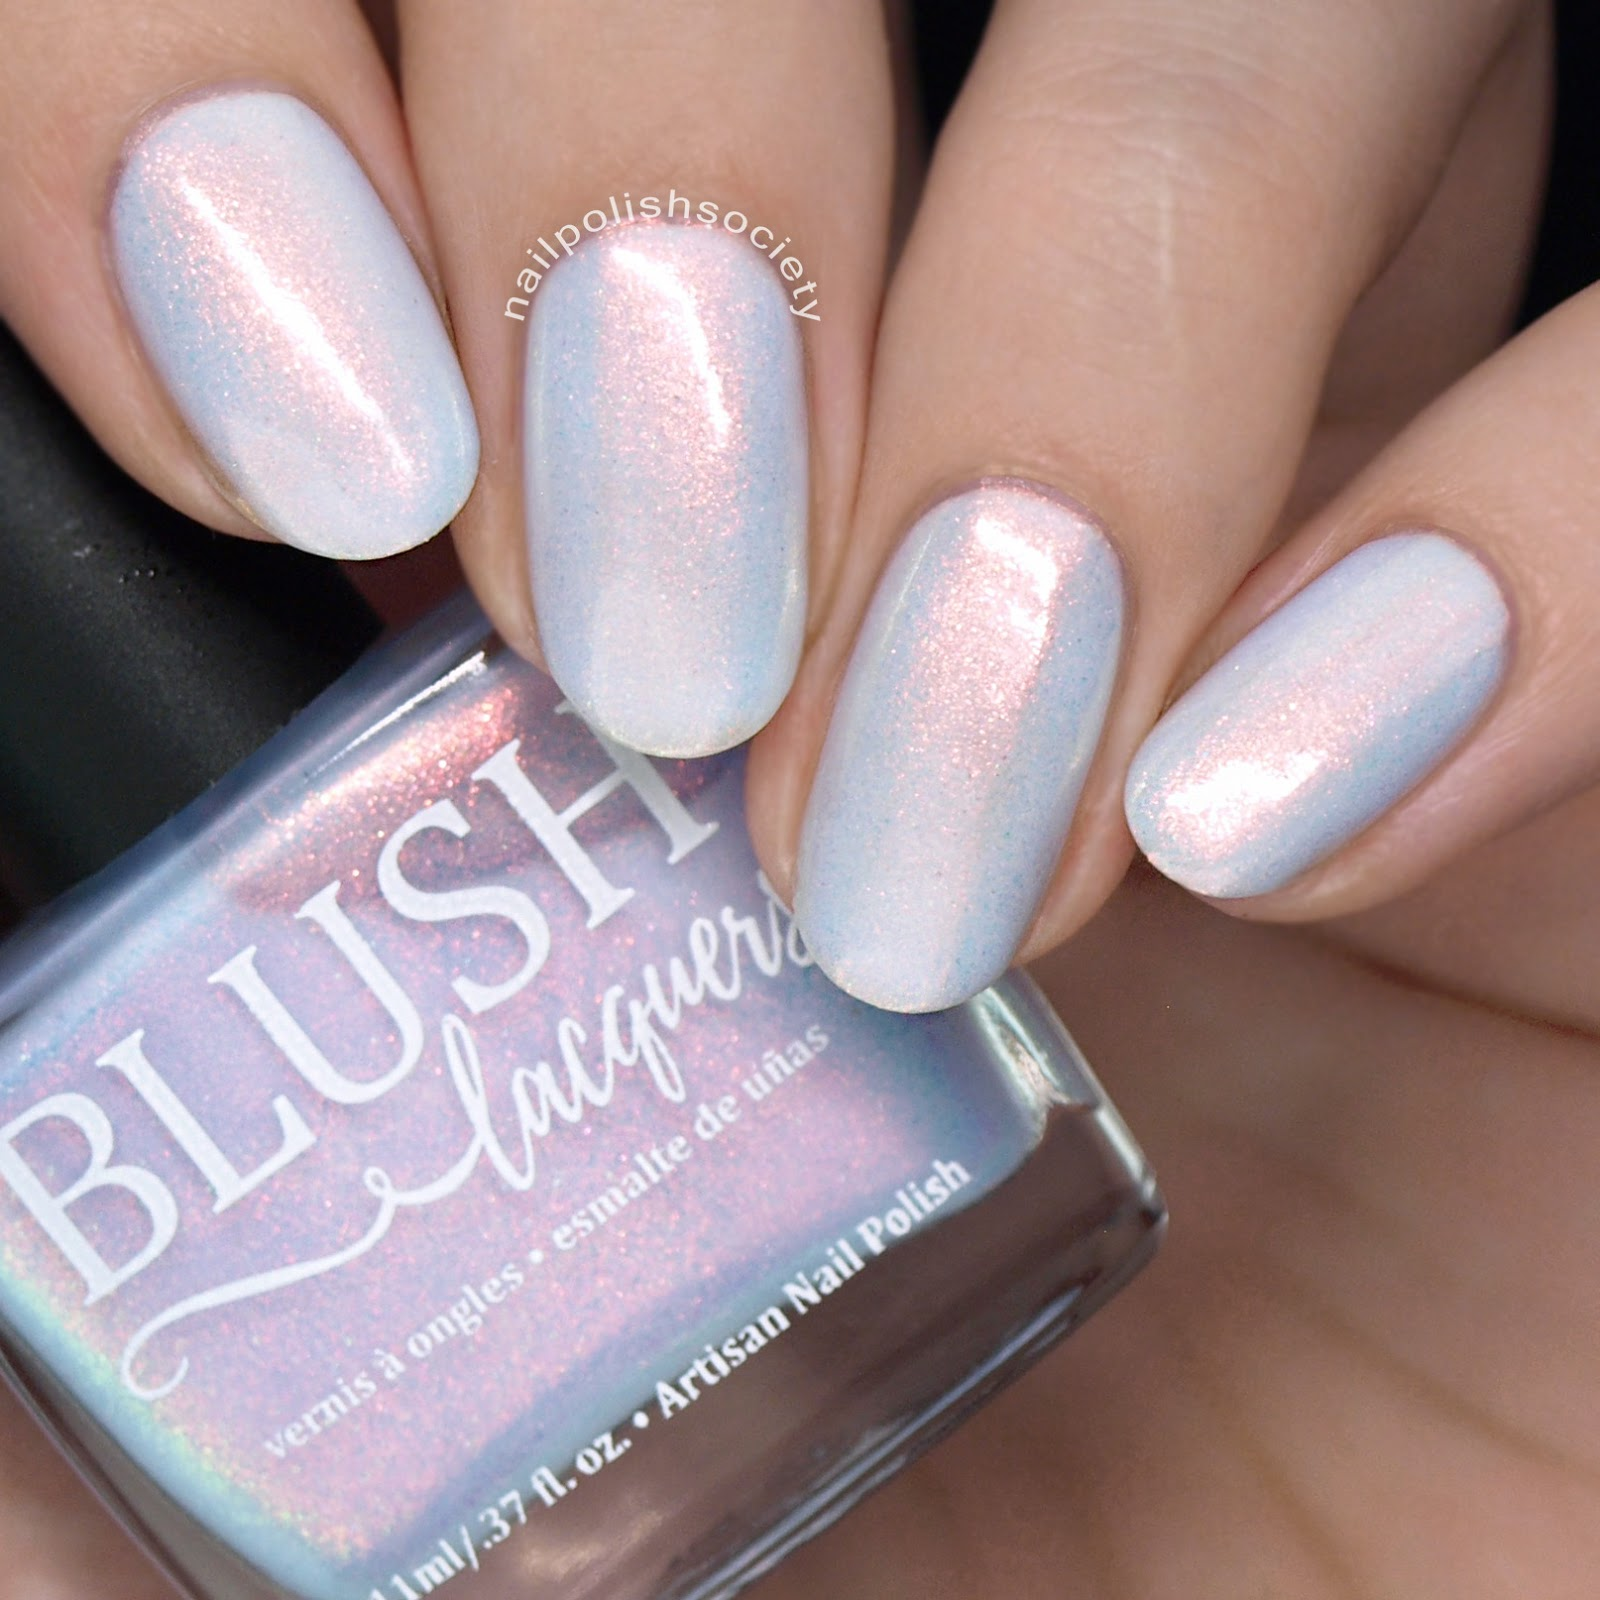 Nail Polish Society: BLUSH Lacquers Beachside Sunset Collection